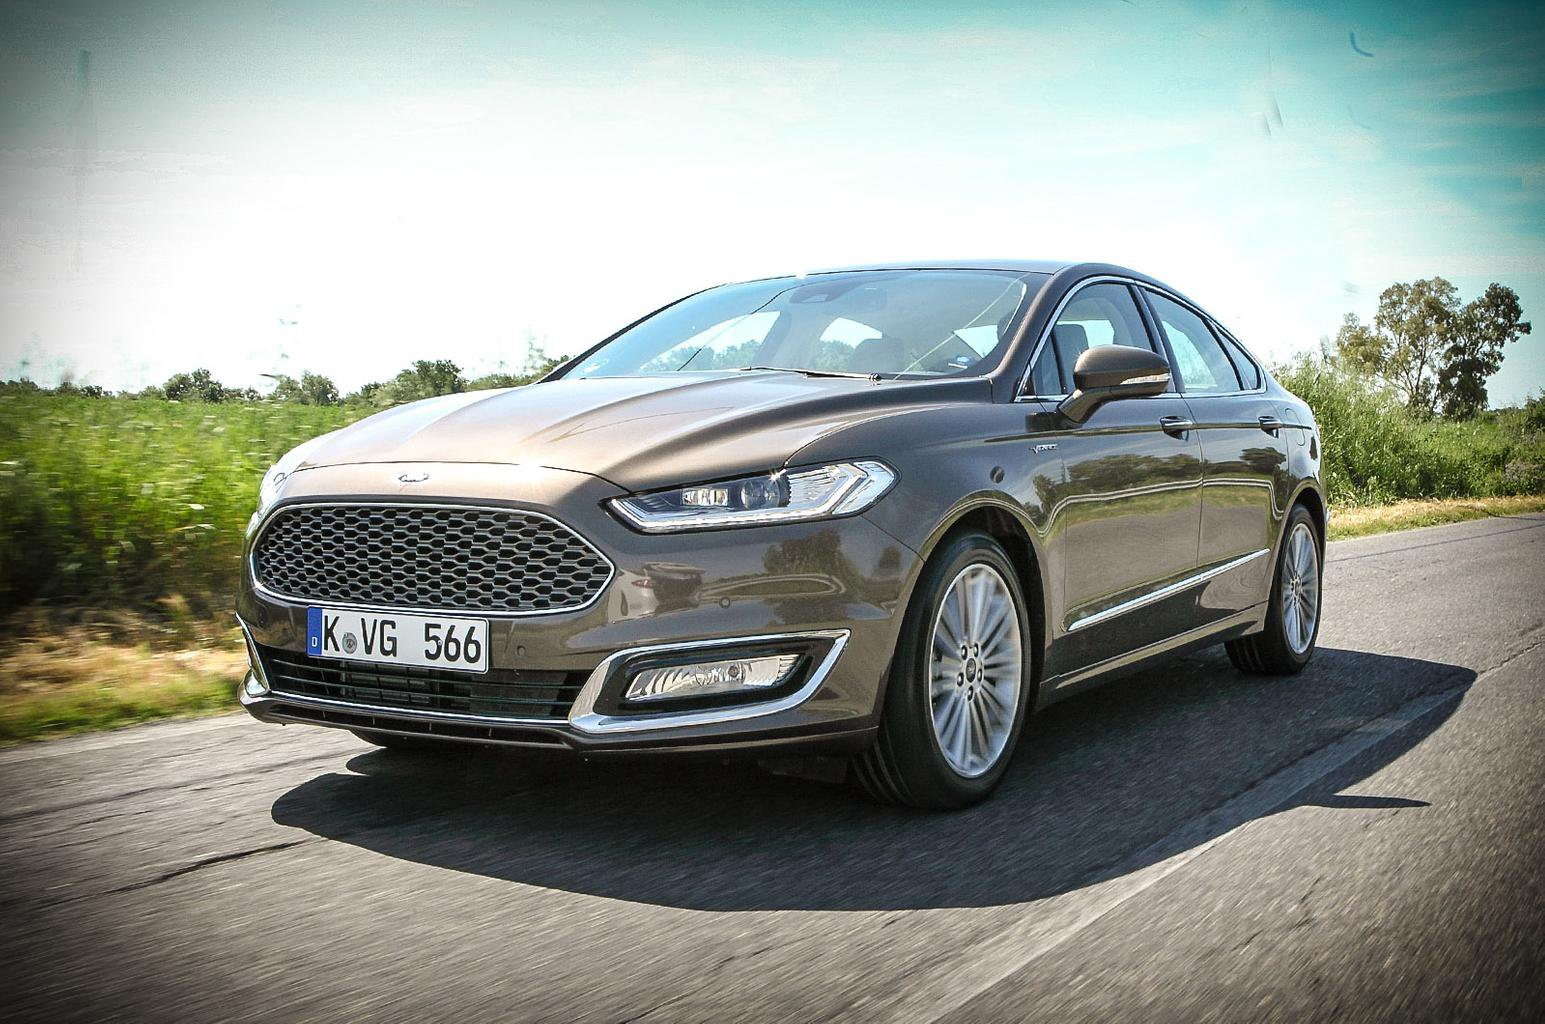 2015 Ford Mondeo Vignale review